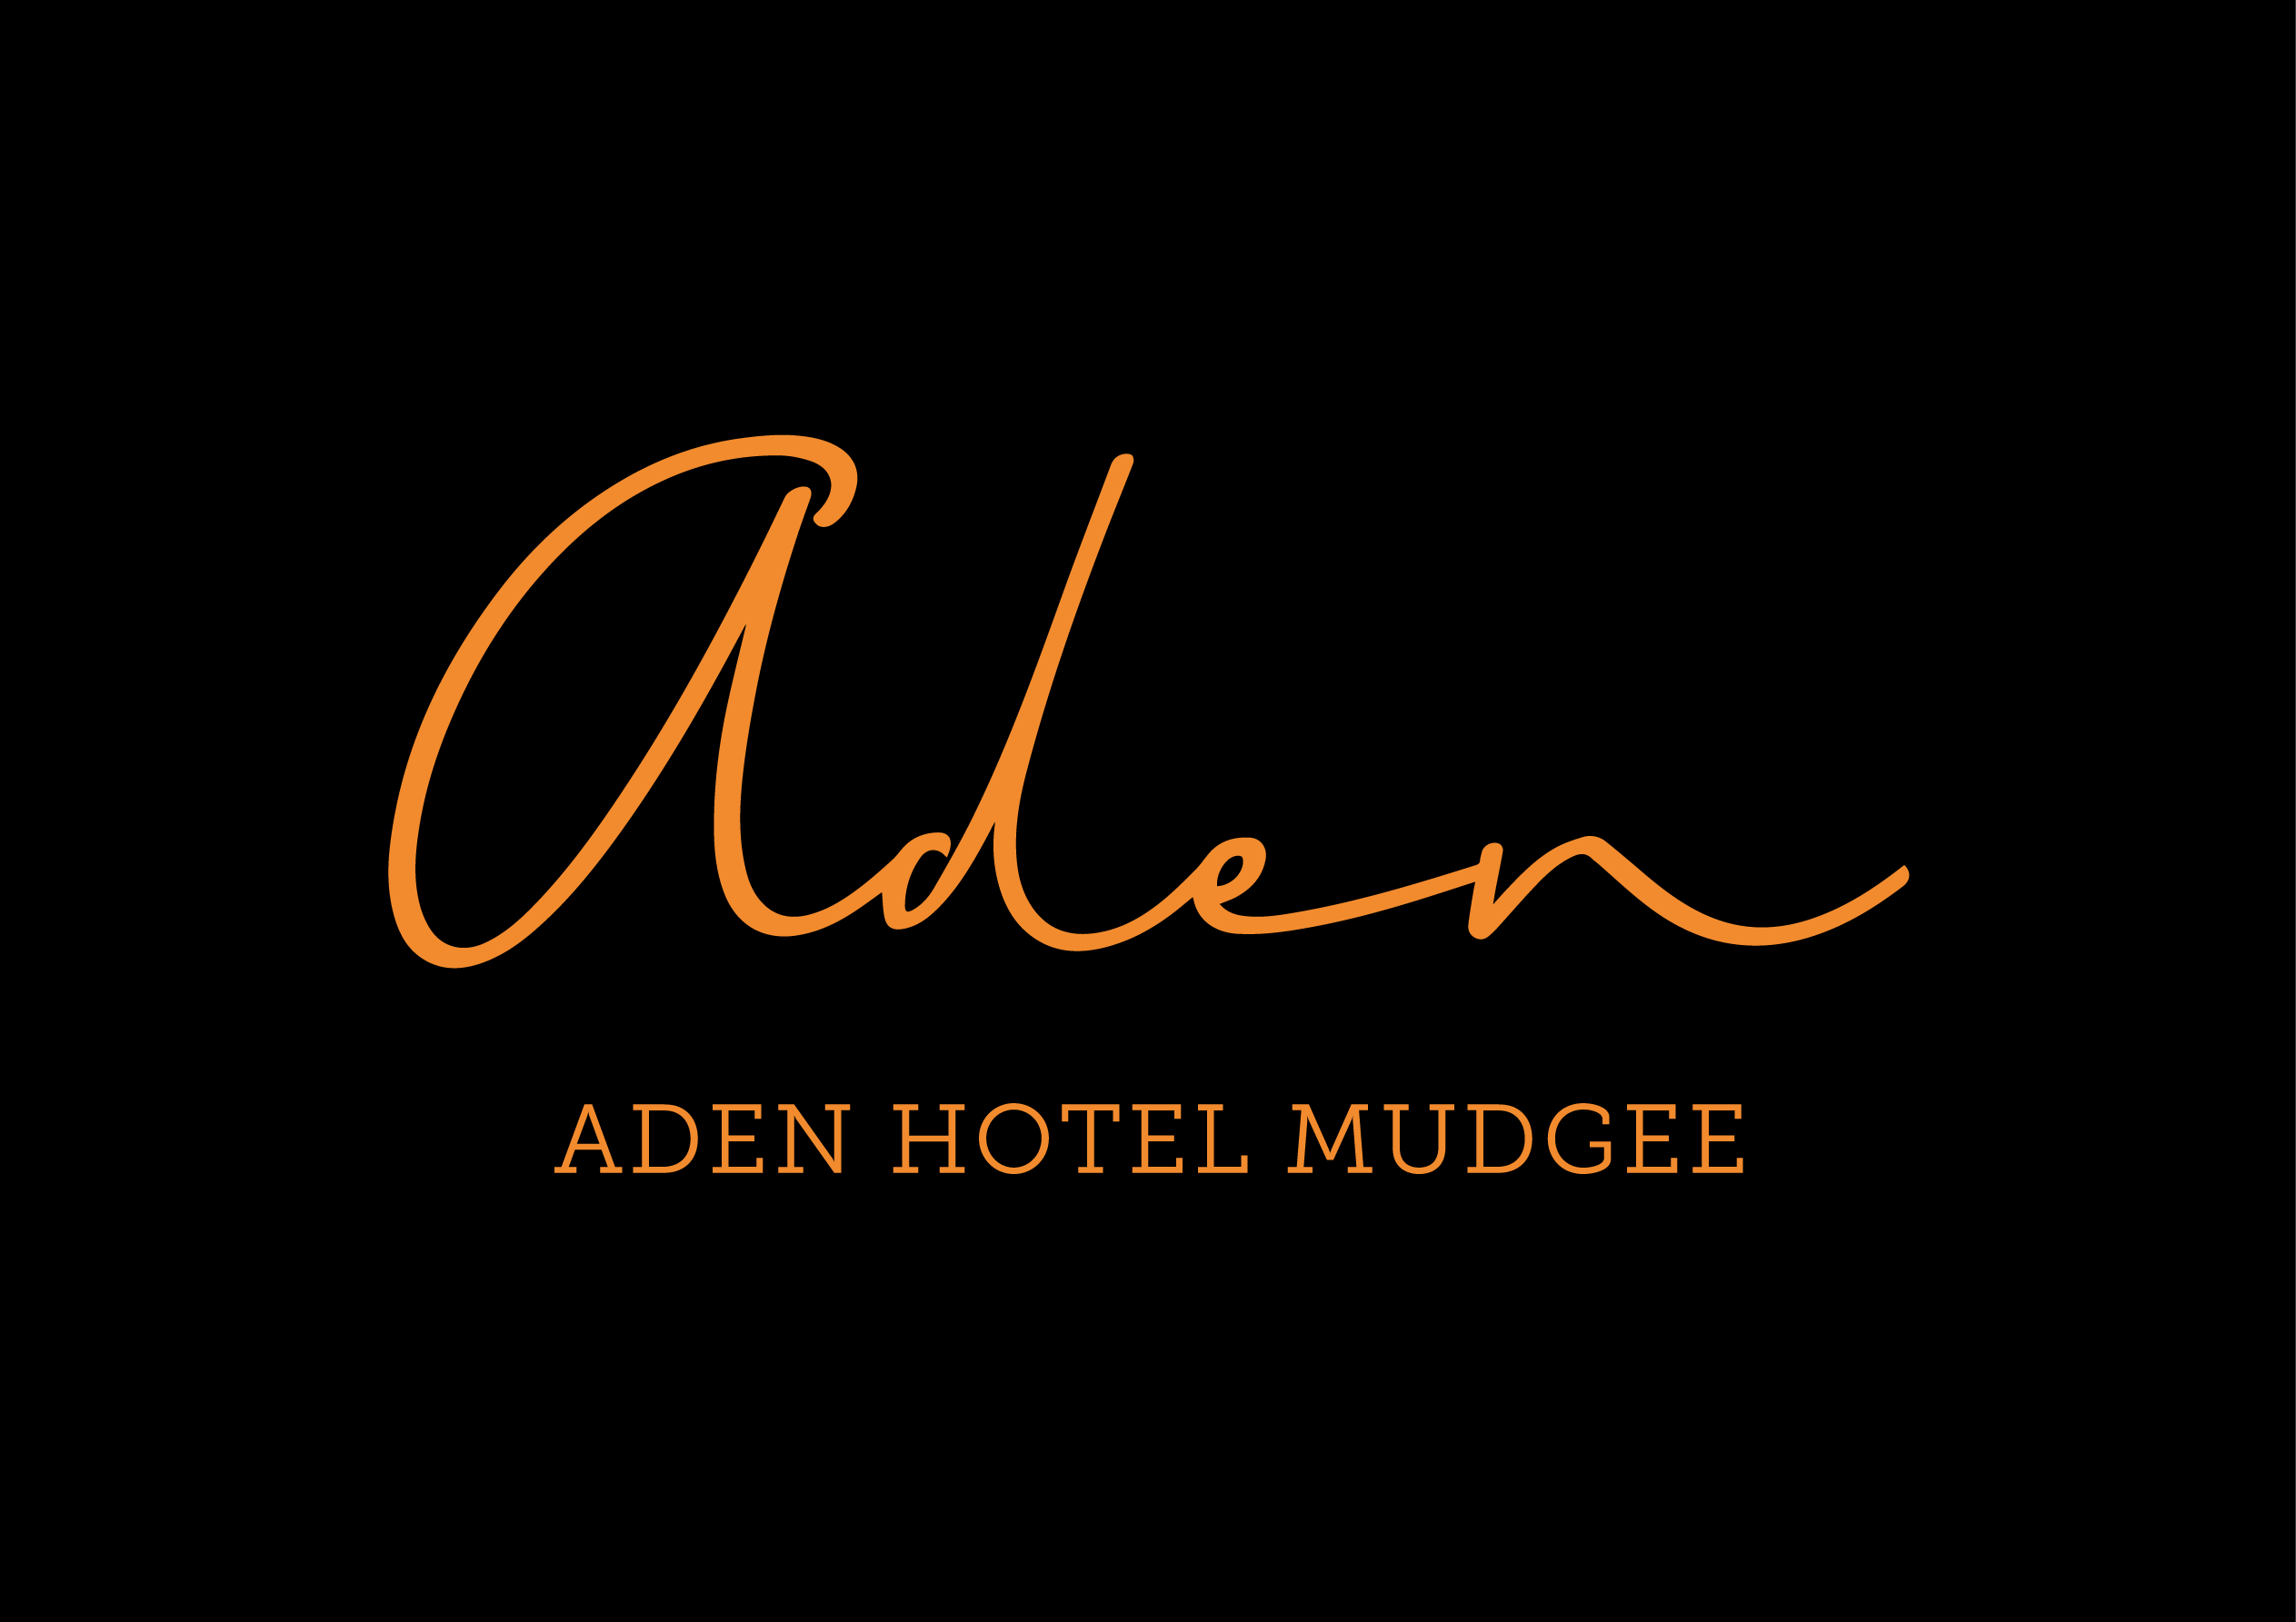 Comfort Inn Aden Hotel Mudgee - Whitsundays Accommodation